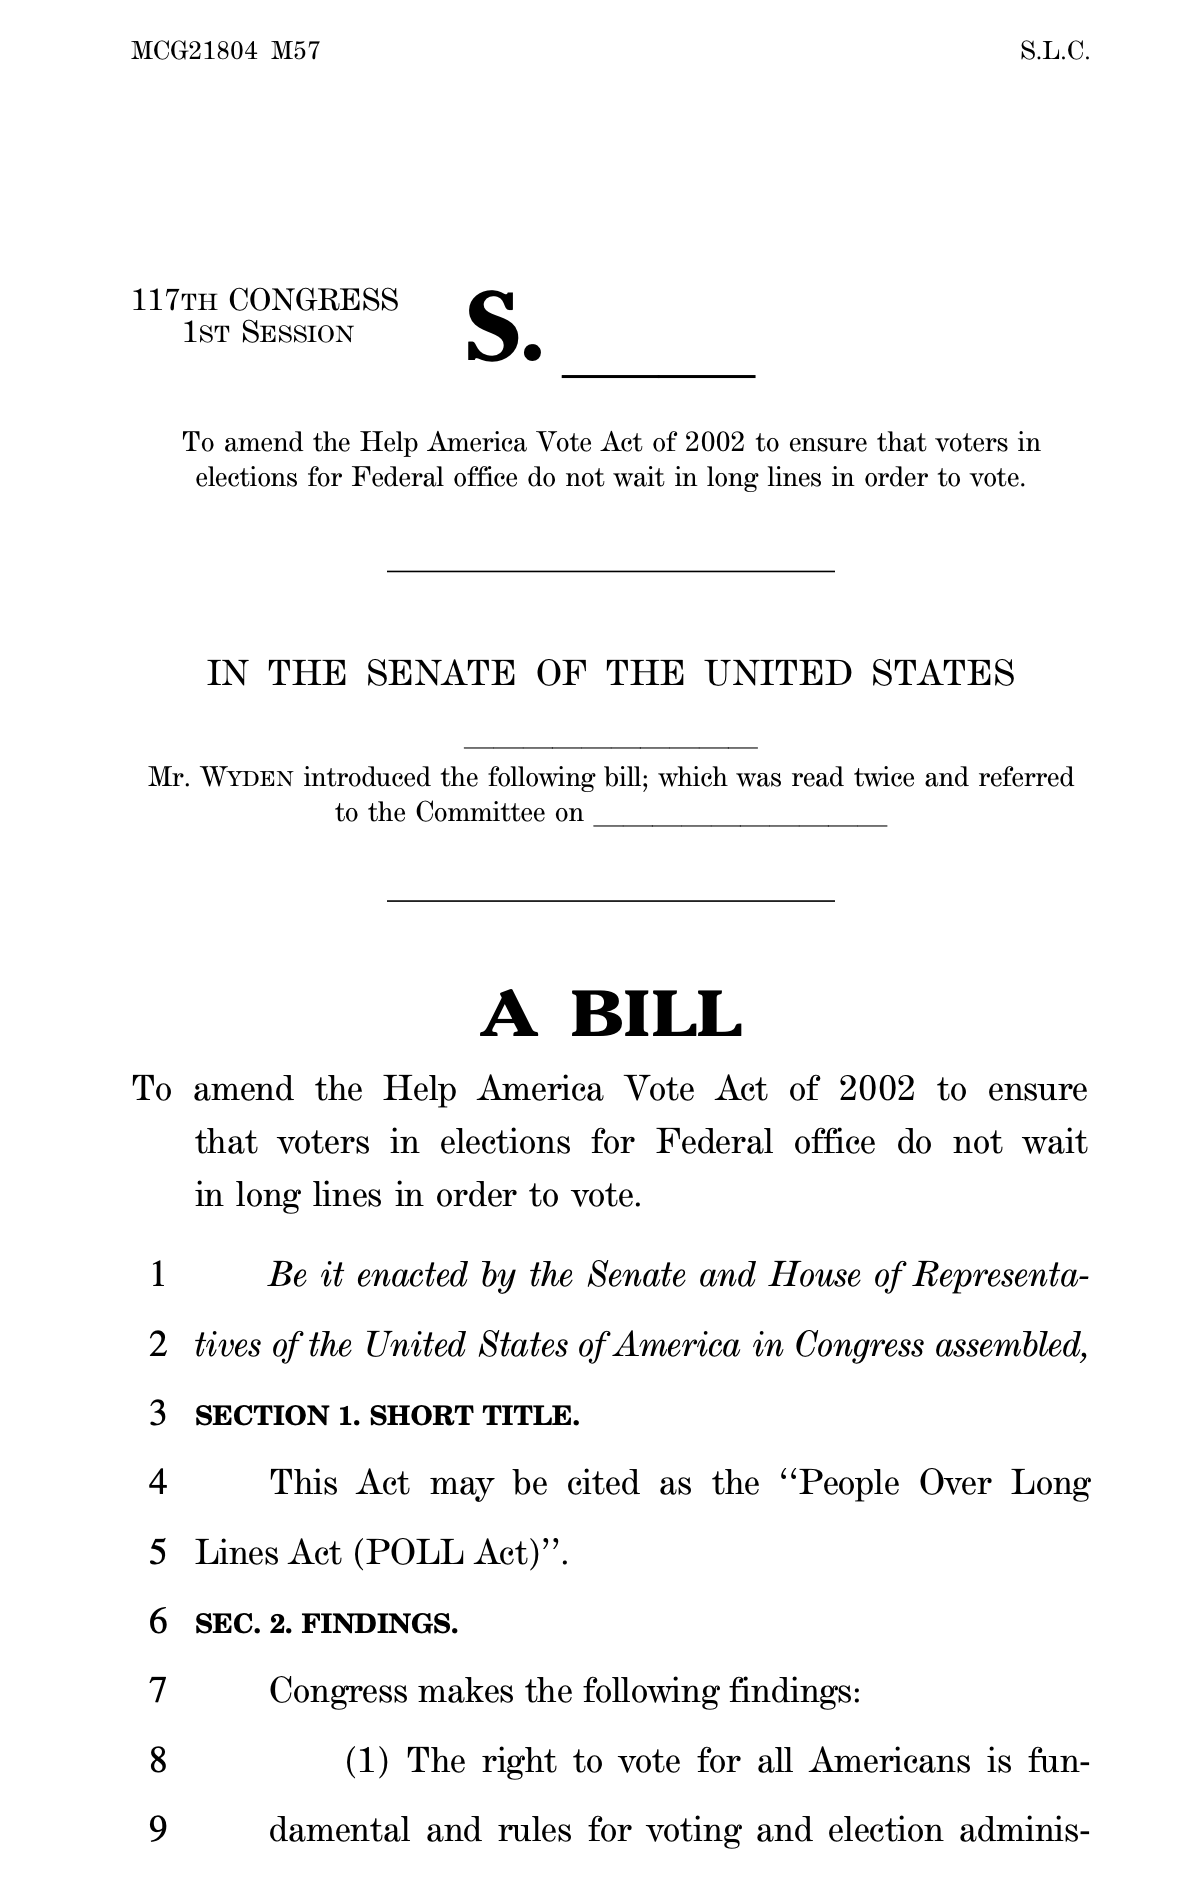 Screen-Shot-2021-06-17-at-3.53.23-PM Democrats Introduces Law To Guarantee Vote Within 30 Minutes Corruption Crime Featured Politics Top Stories